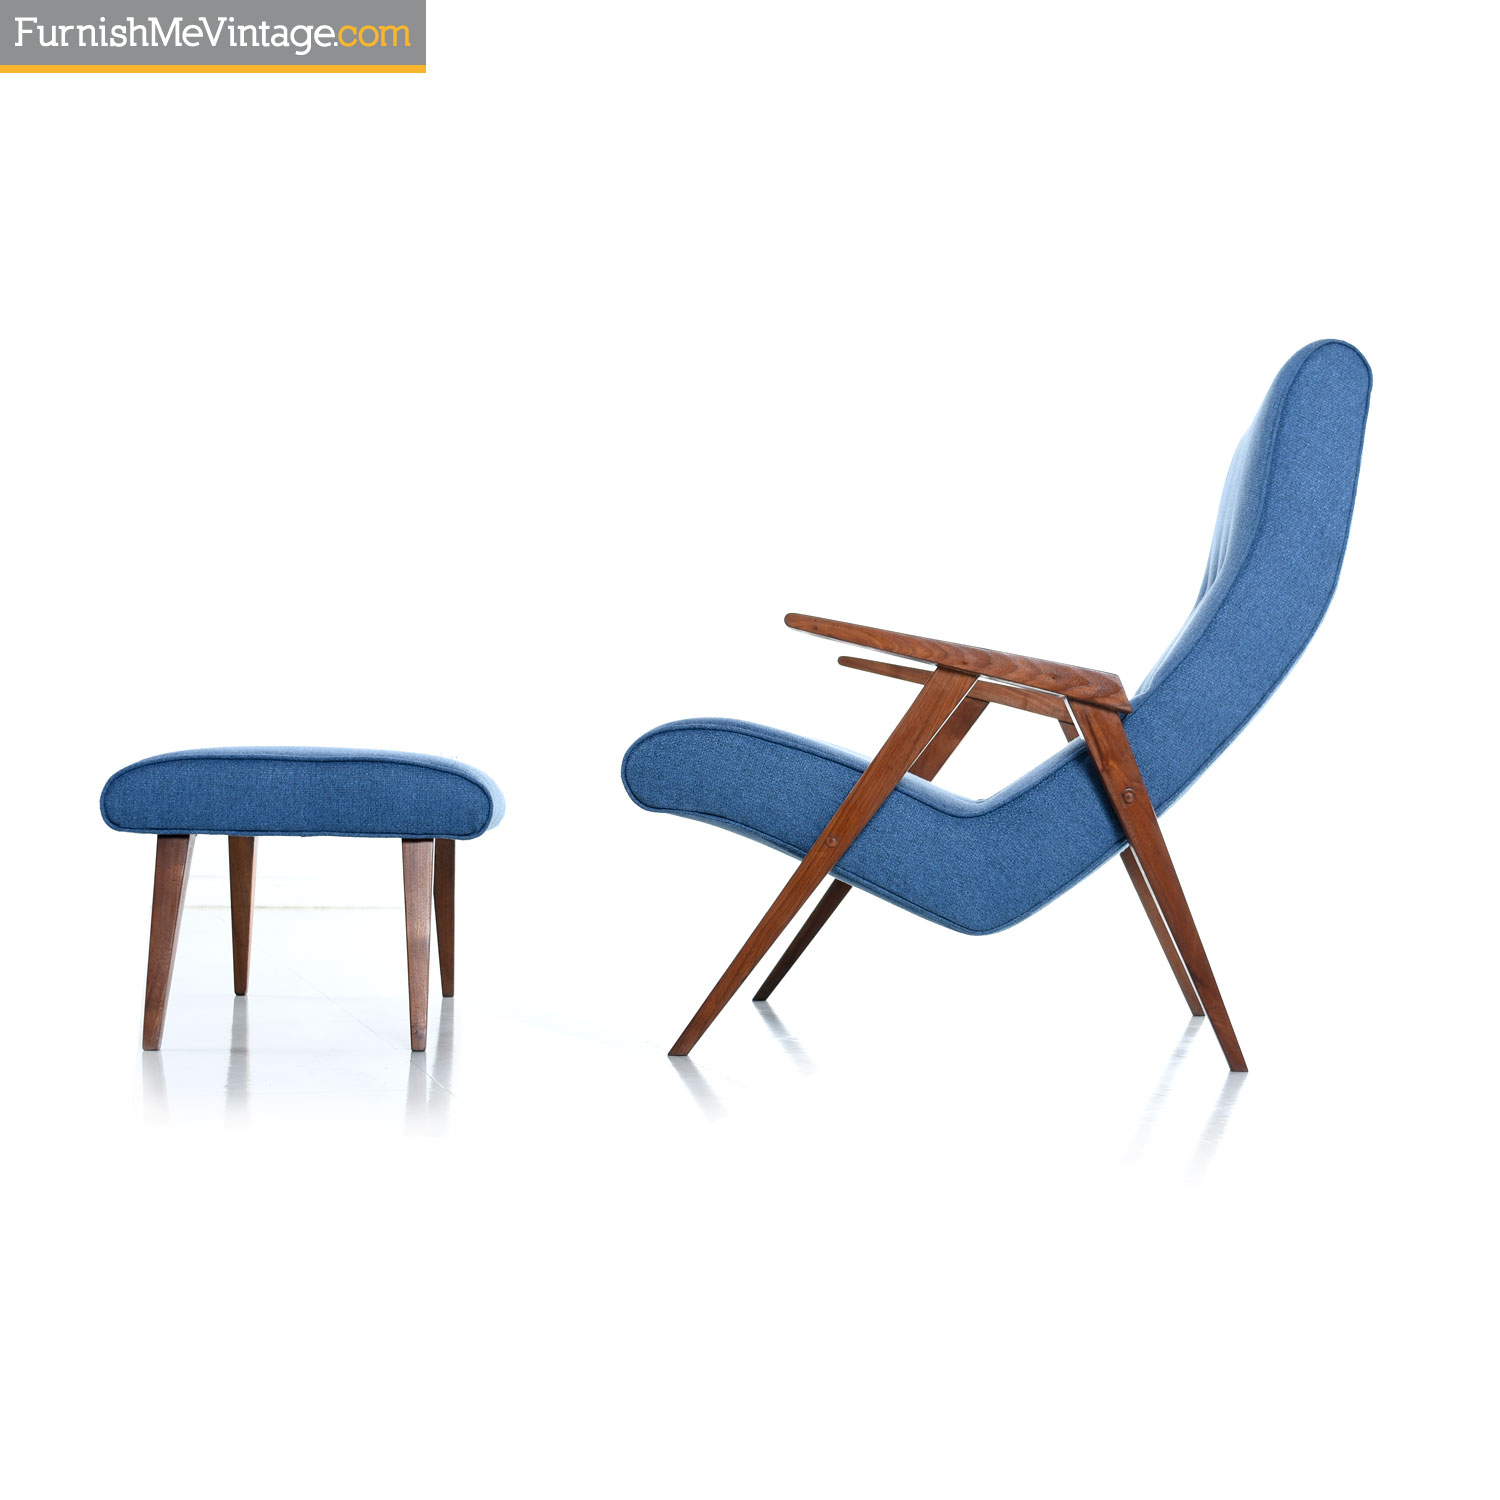 Incredible Restored Jens Risom Style Compass Leg Scoop Lounge Armchair And Ottoman Ocoug Best Dining Table And Chair Ideas Images Ocougorg